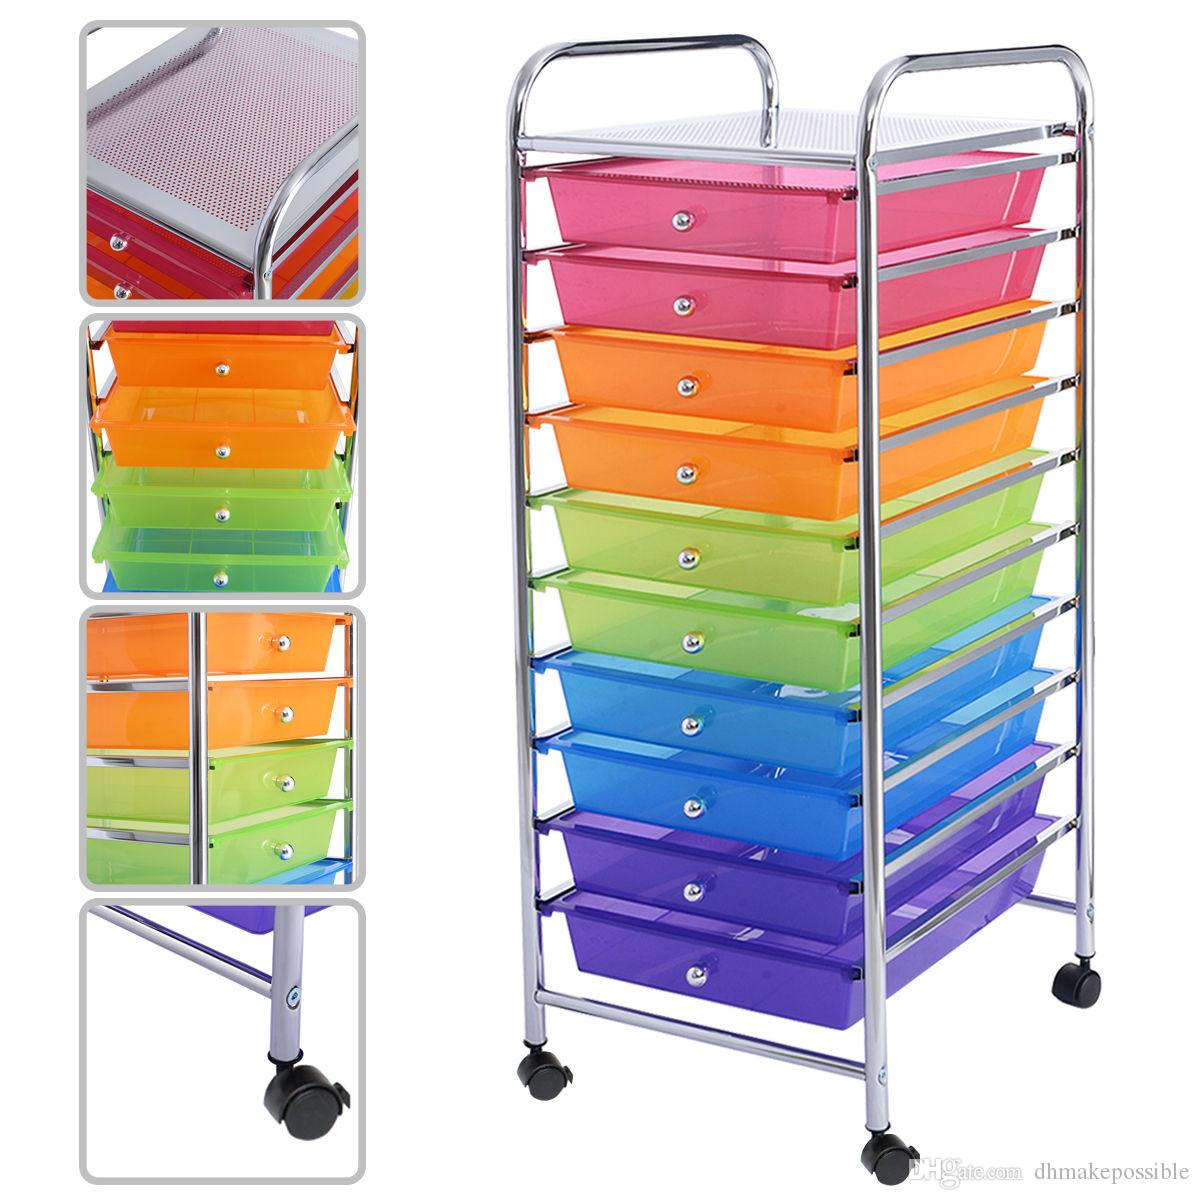 Delightful 10 Drawer Rolling Storage Cart For Scrapbook Paper In Office School  Organizer Paper Storage Rolling Cart Online With $34.26/Piece On  Dhmakepossibleu0027s Store ...